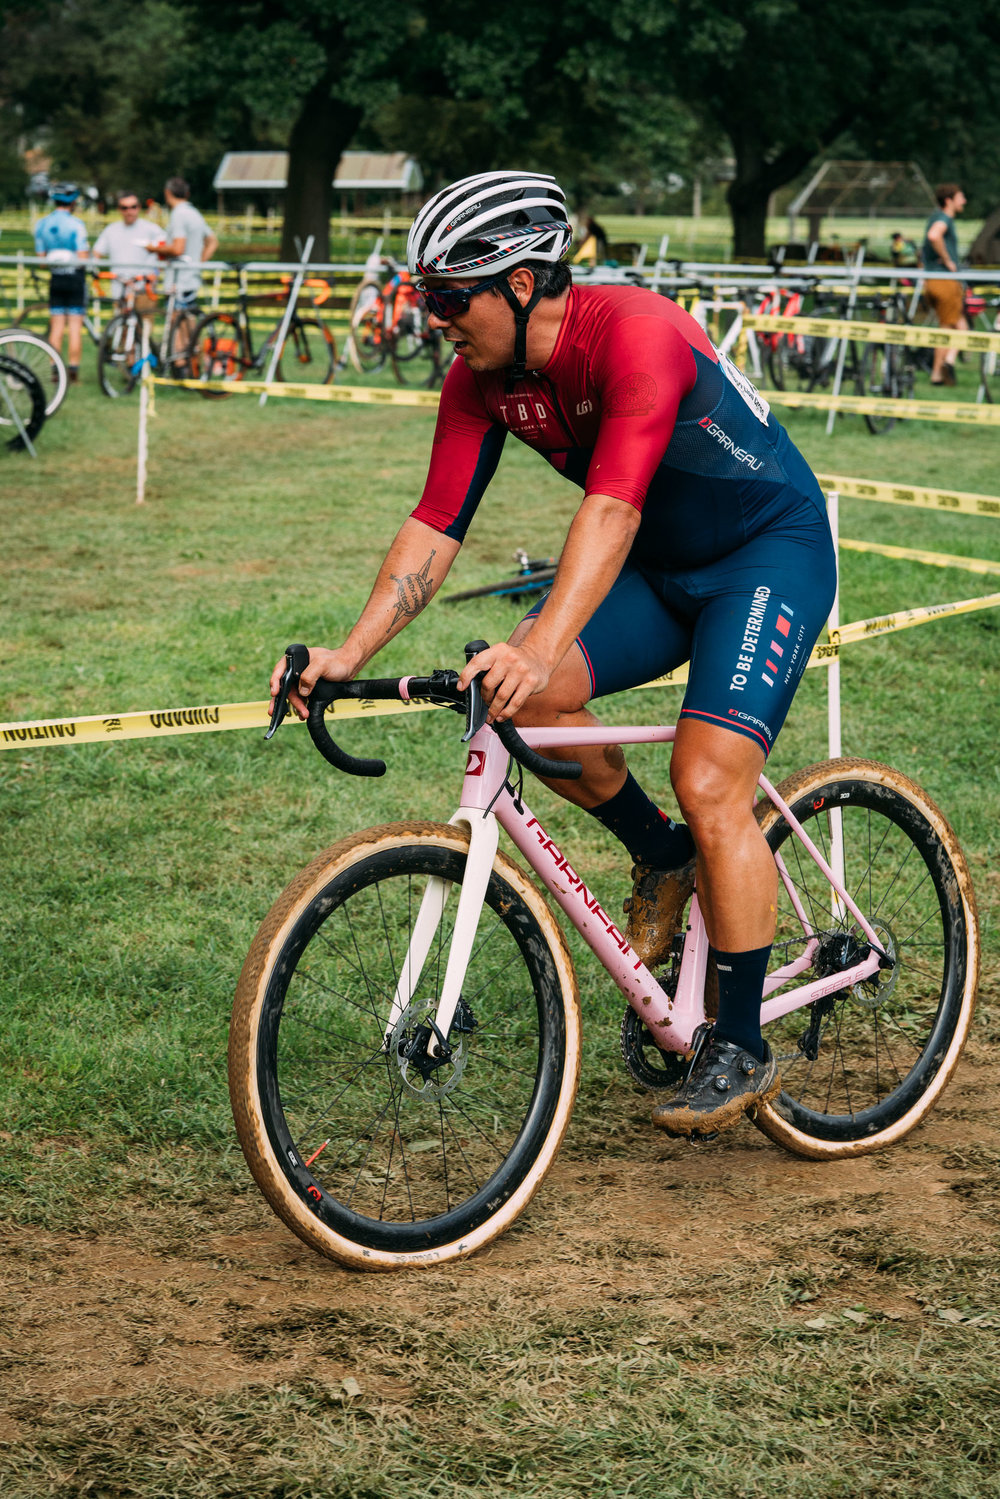 photo-rhetoric-to-be-determined-nittany-cyclocross-1201.jpg